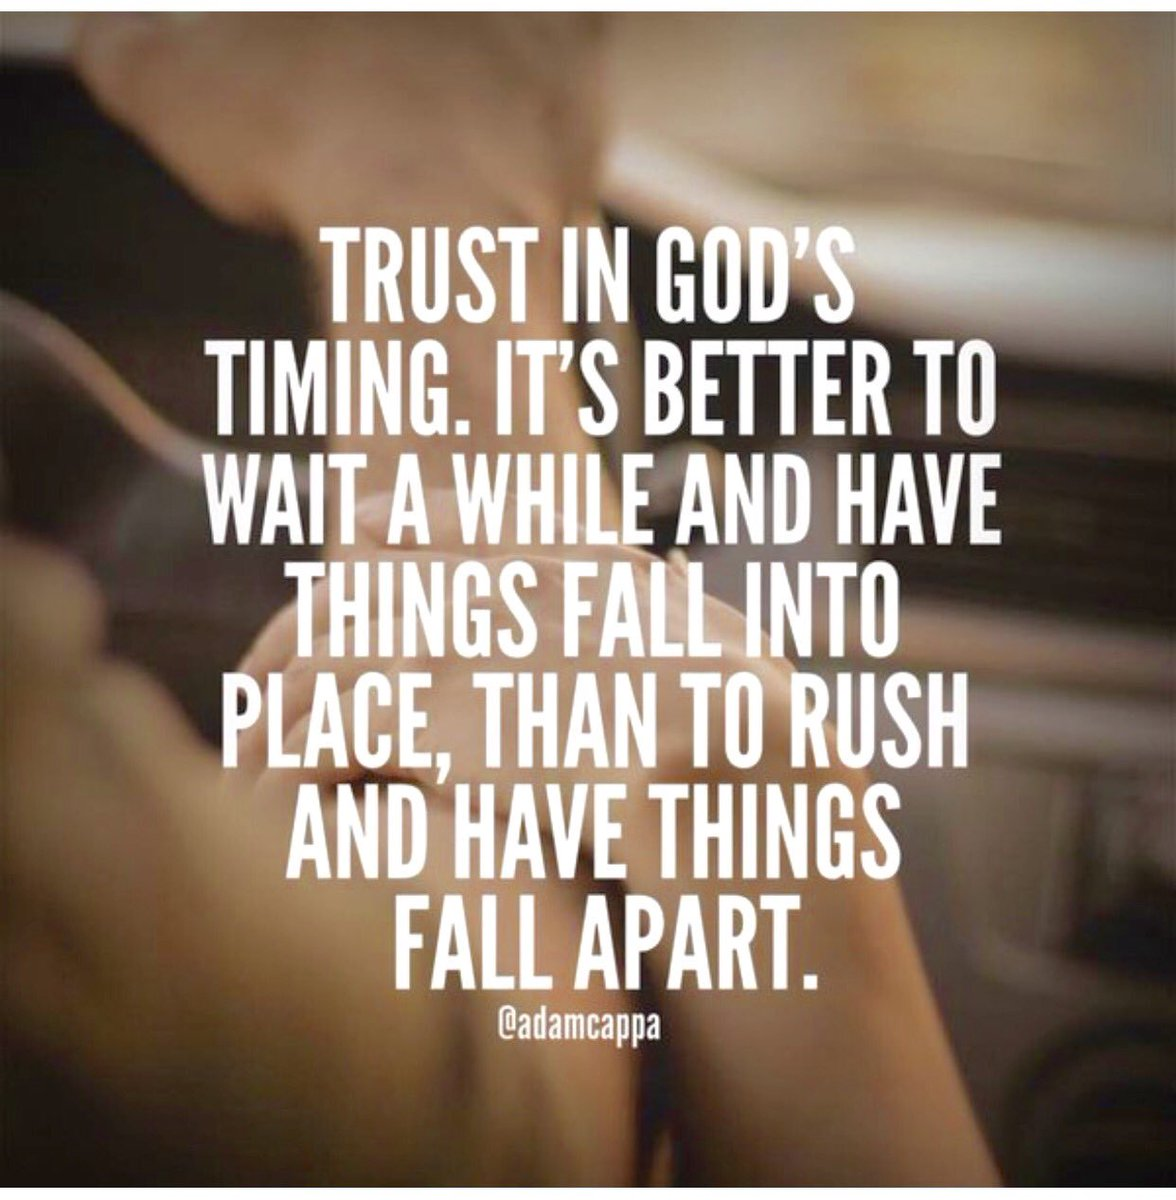 """Inspirational Quotes On Twitter: """"Trust In God's Timing"""